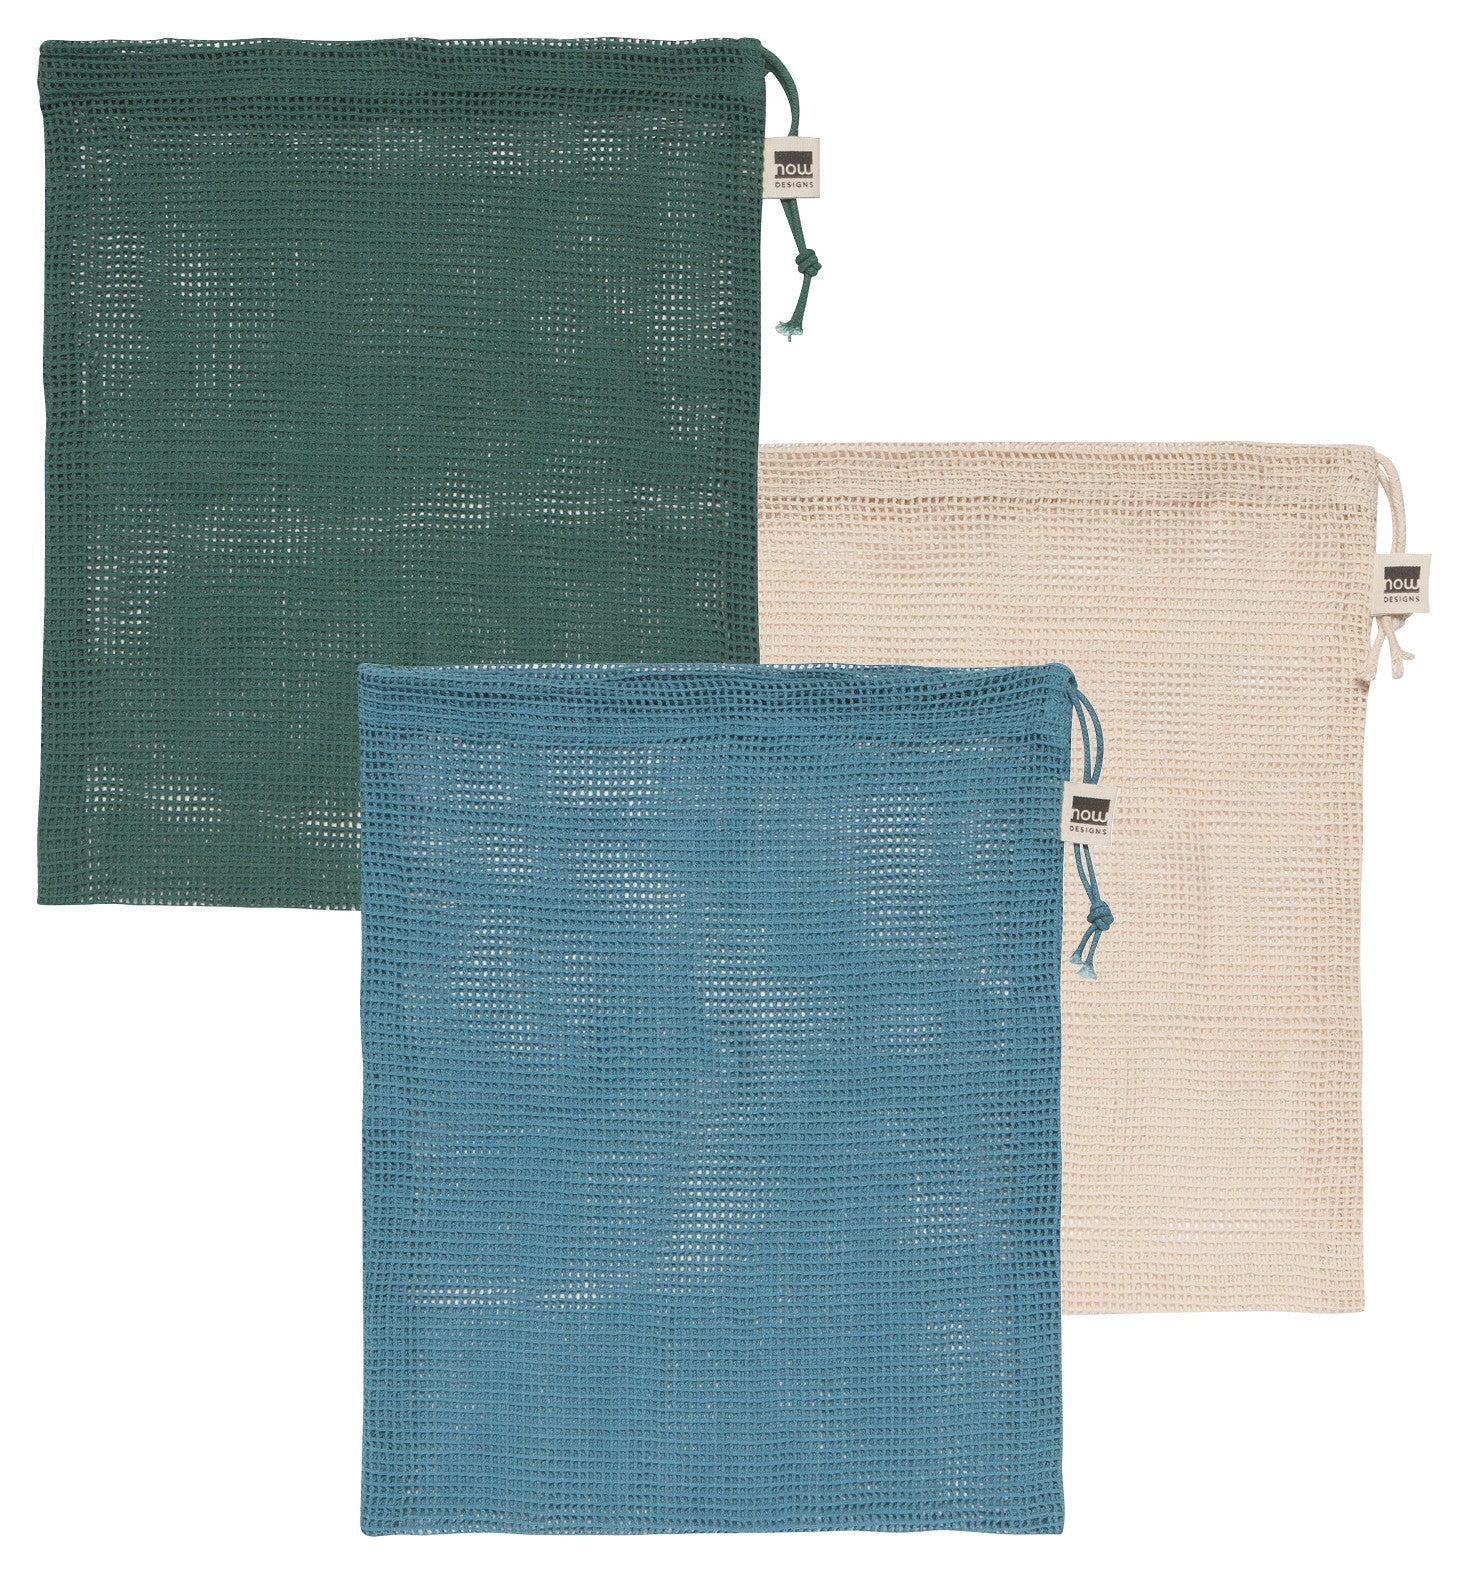 Save-It Le Marche Produce Bags - Set of 3 Blues